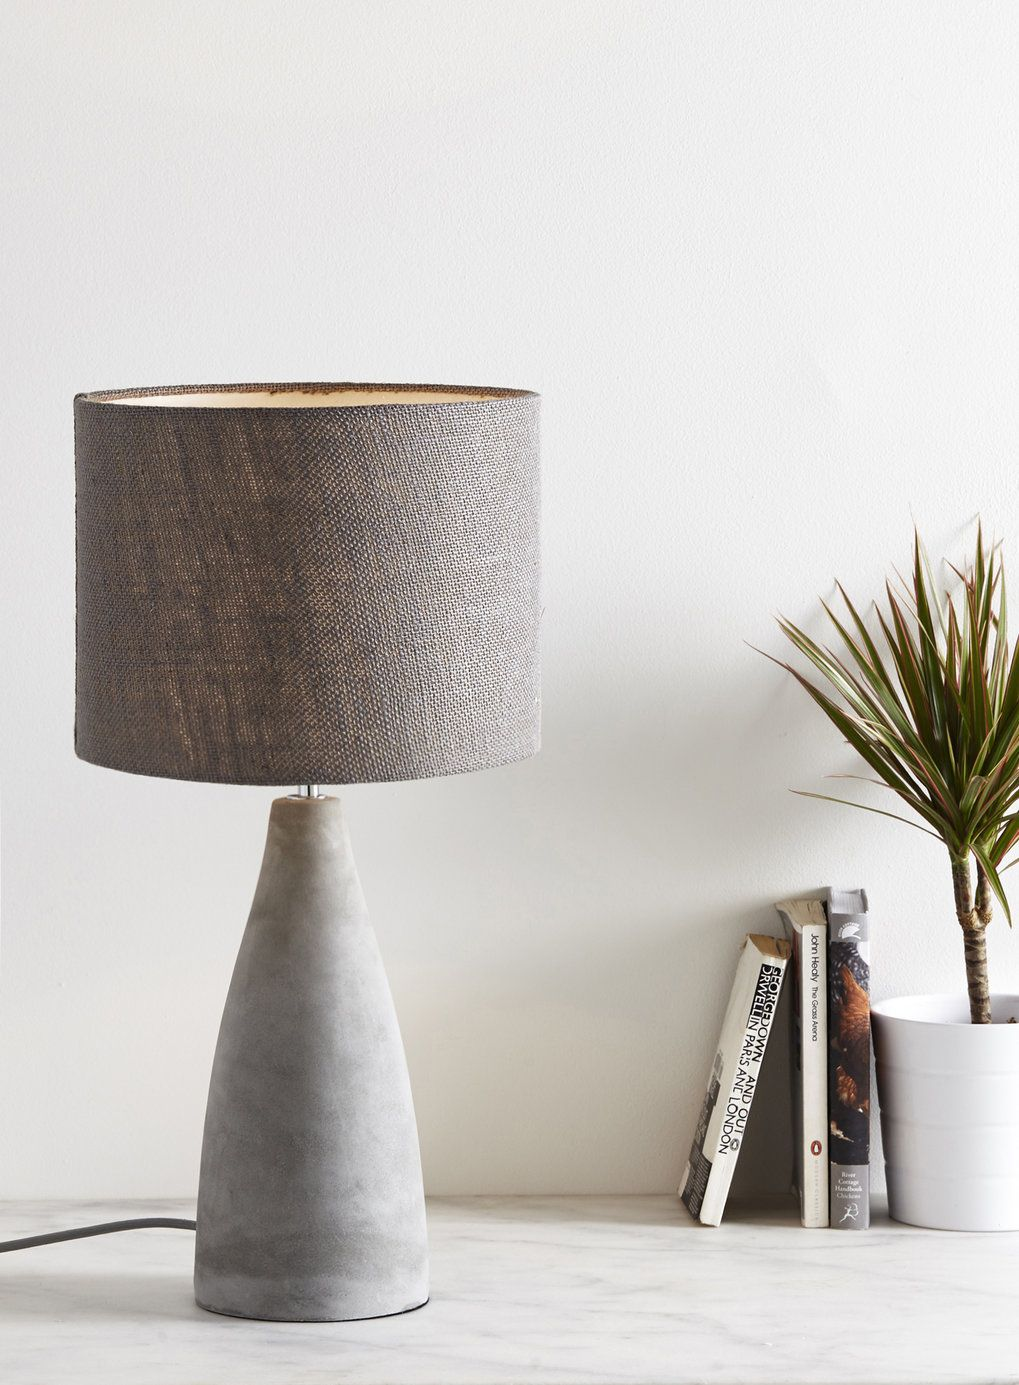 Fraser Grey Table Lamp Bhs Grey Table Lamps Table Lamps For